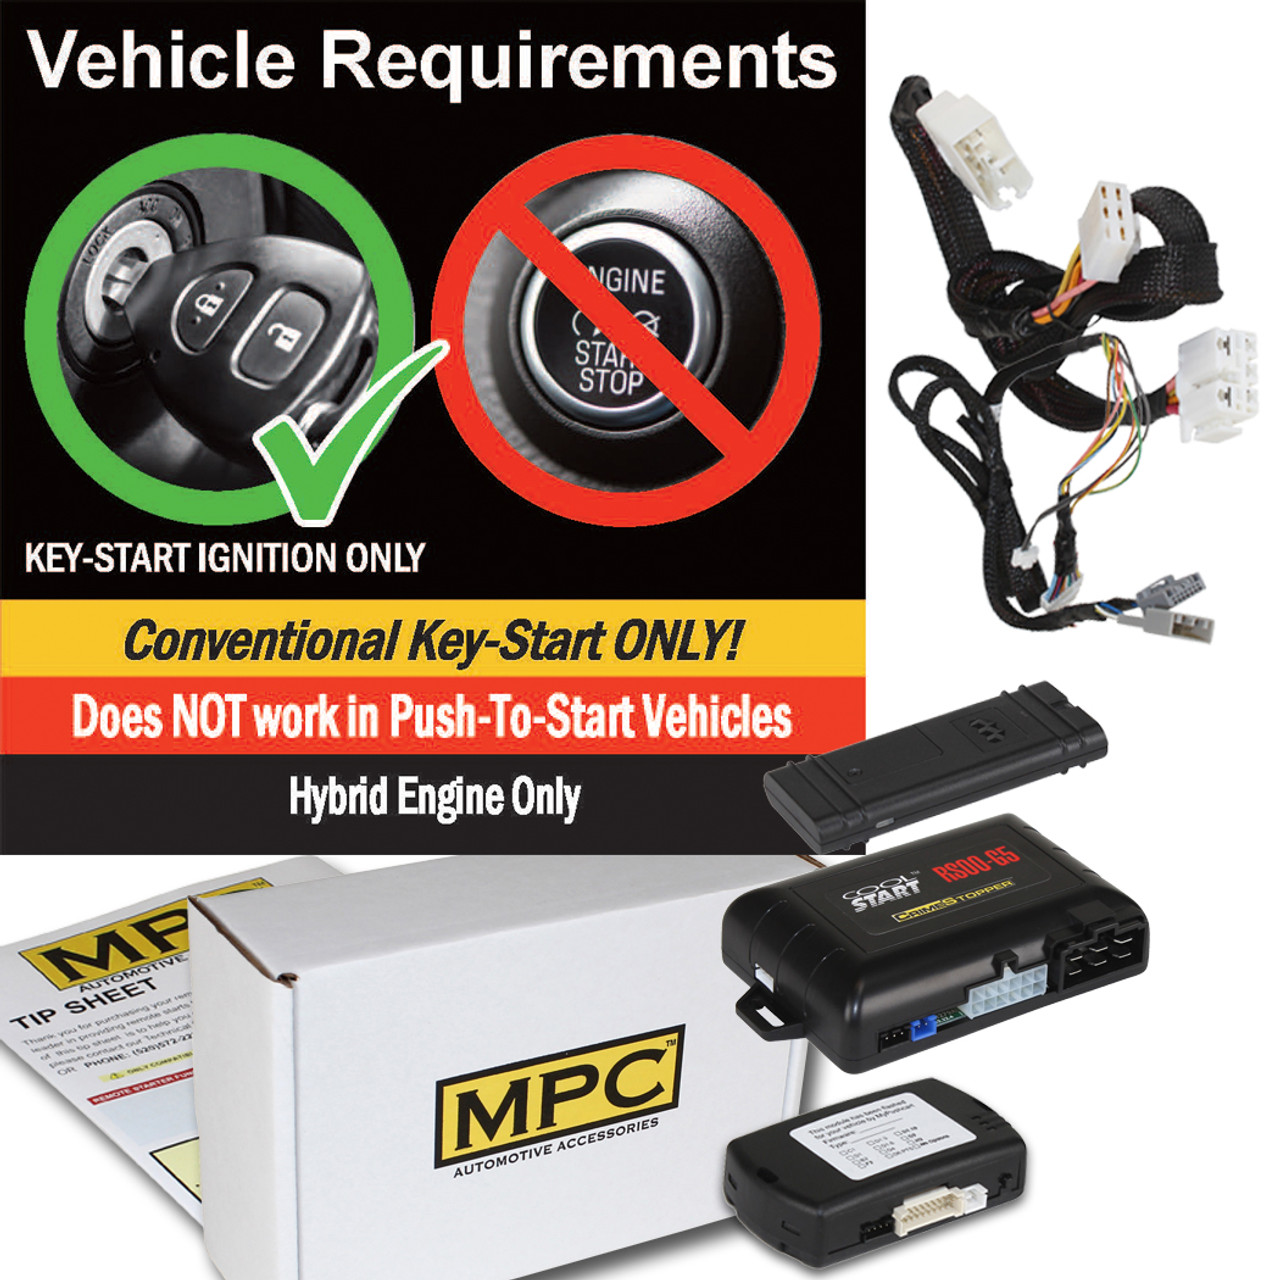 MPC Honda Fit 2015-2020 Smartphone Or OEM Activated Remote Start - Key-to-Start